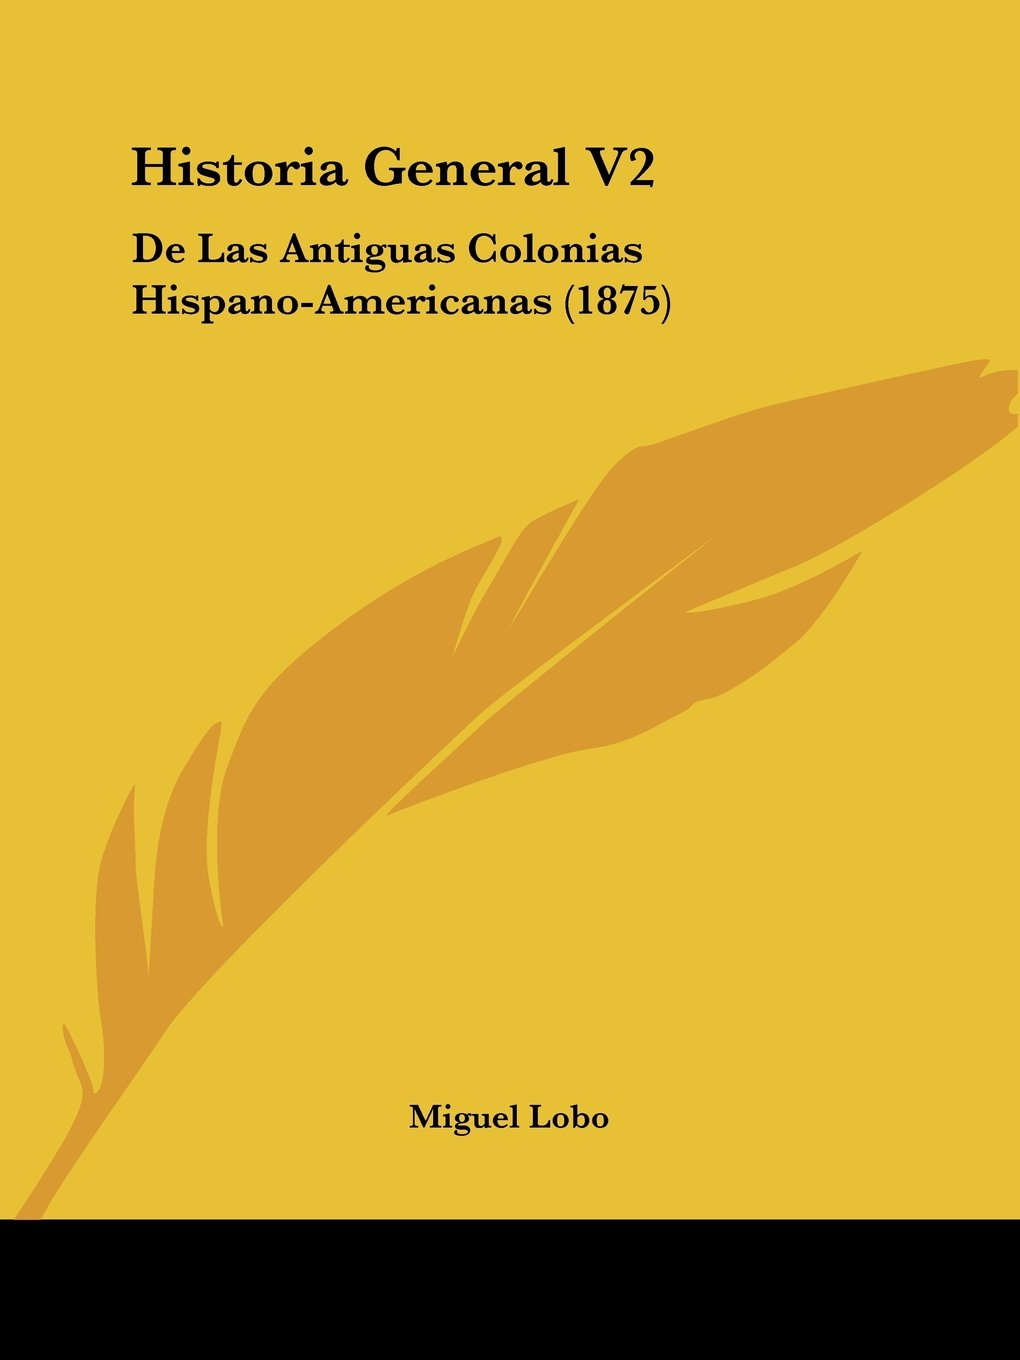 Historia General V2: de Las Antiguas Colonias Hispano-Americanas 1875: Amazon.es: Miguel Lobo: Libros